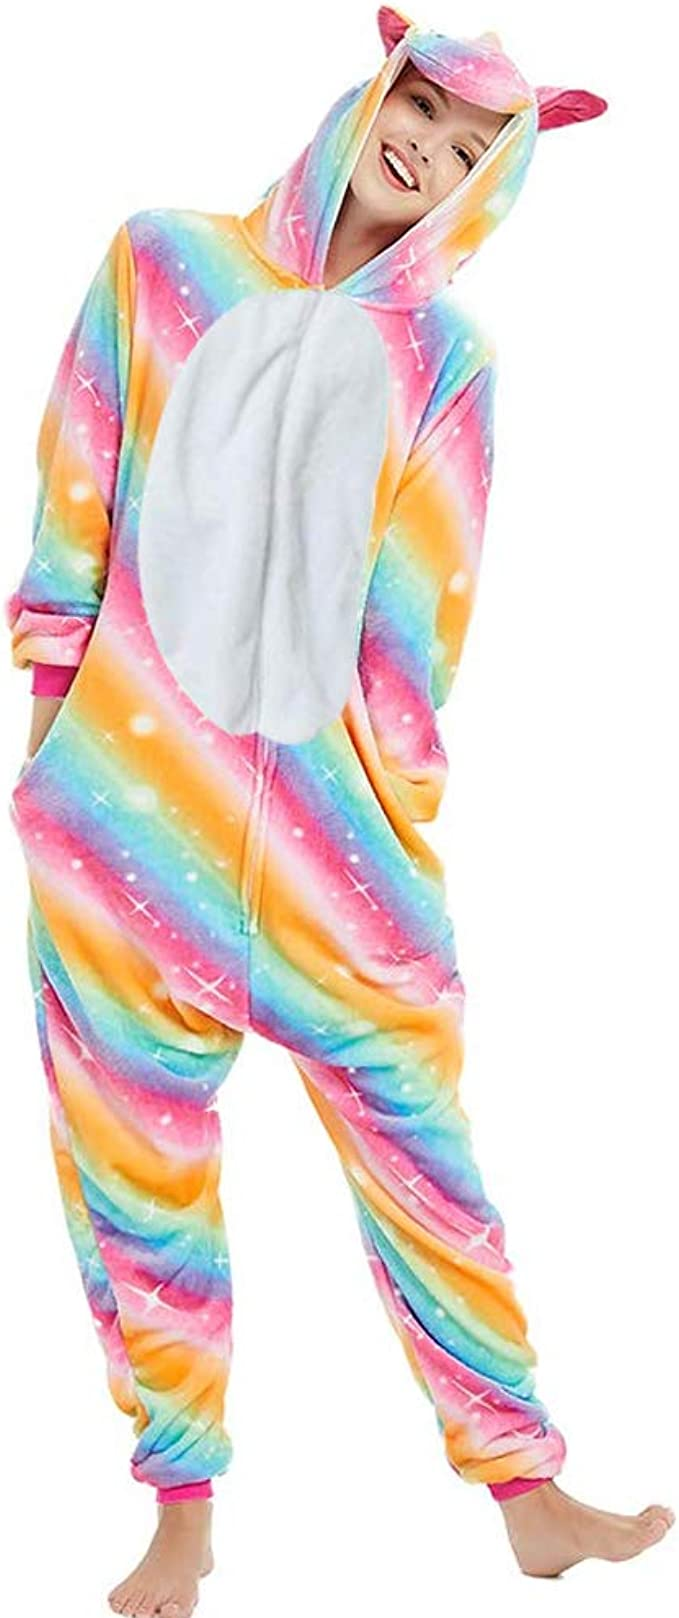 Pijama Unicornio Adulto - Cosplay Animal Disfraz Pyjamas Mujer ...